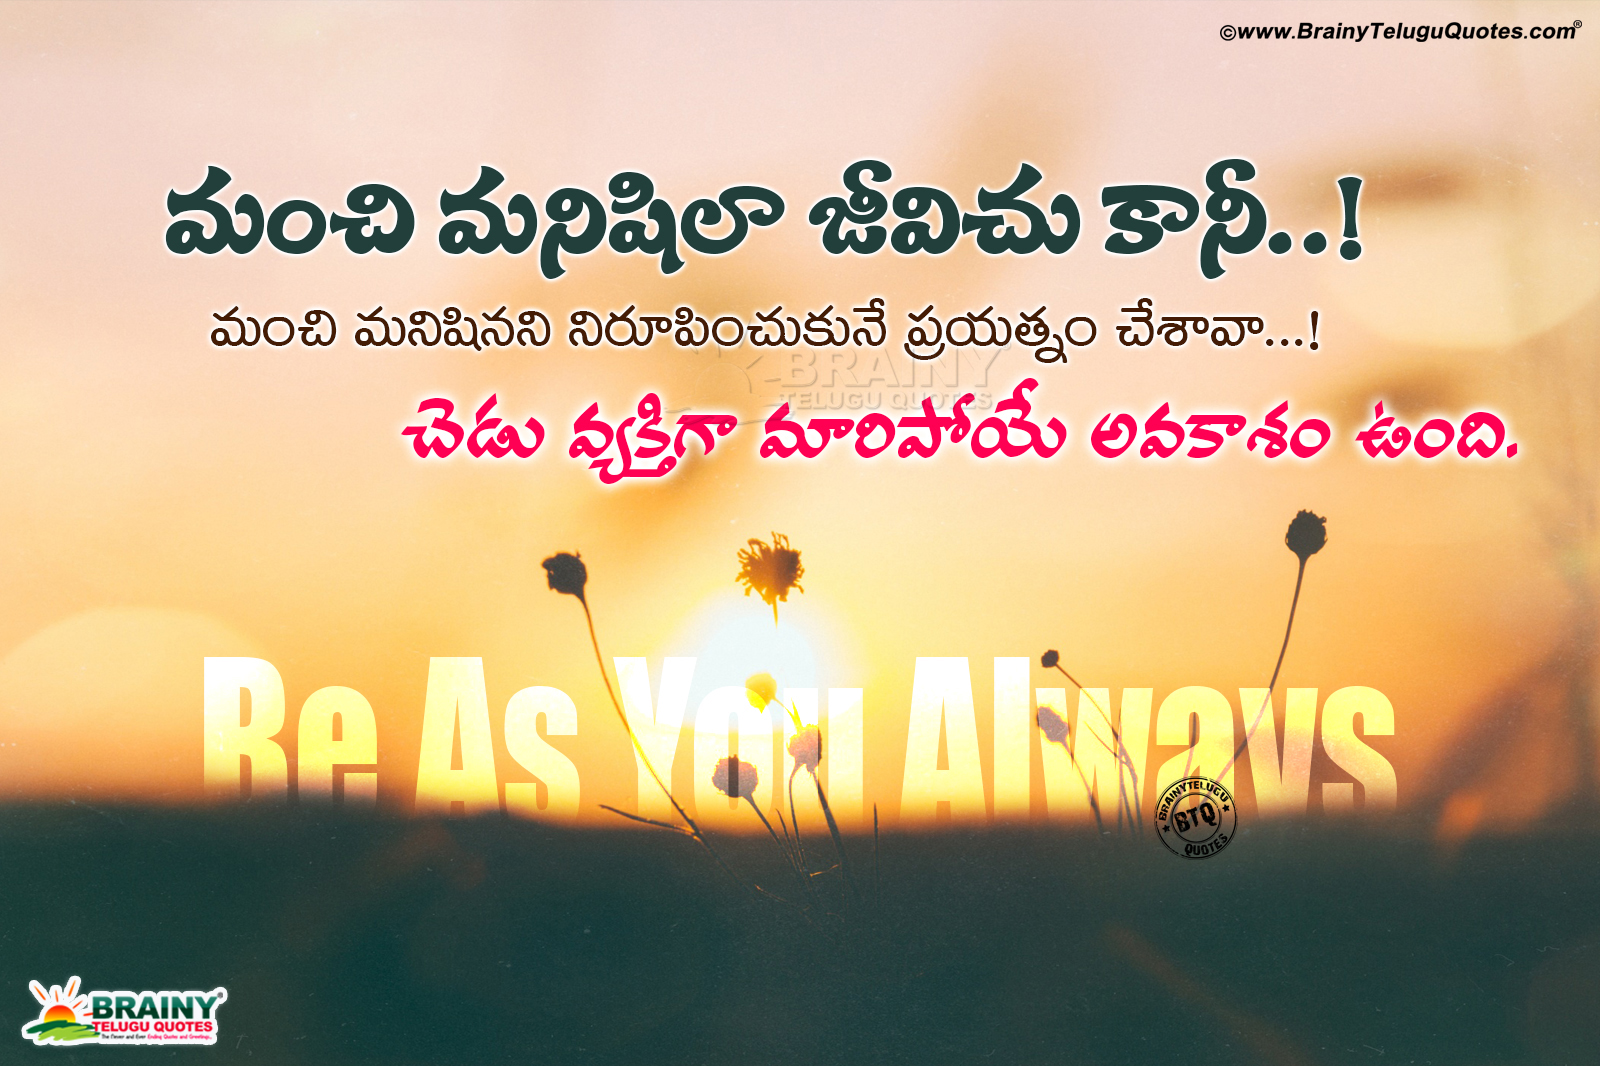 Inspiring Messages On Life In Telugu Best Self Motivational Quotes In Telugu With Hd Wallpapers Brainyteluguquotes Comtelugu Quotes English Quotes Hindi Quotes Tamil Quotes Greetings